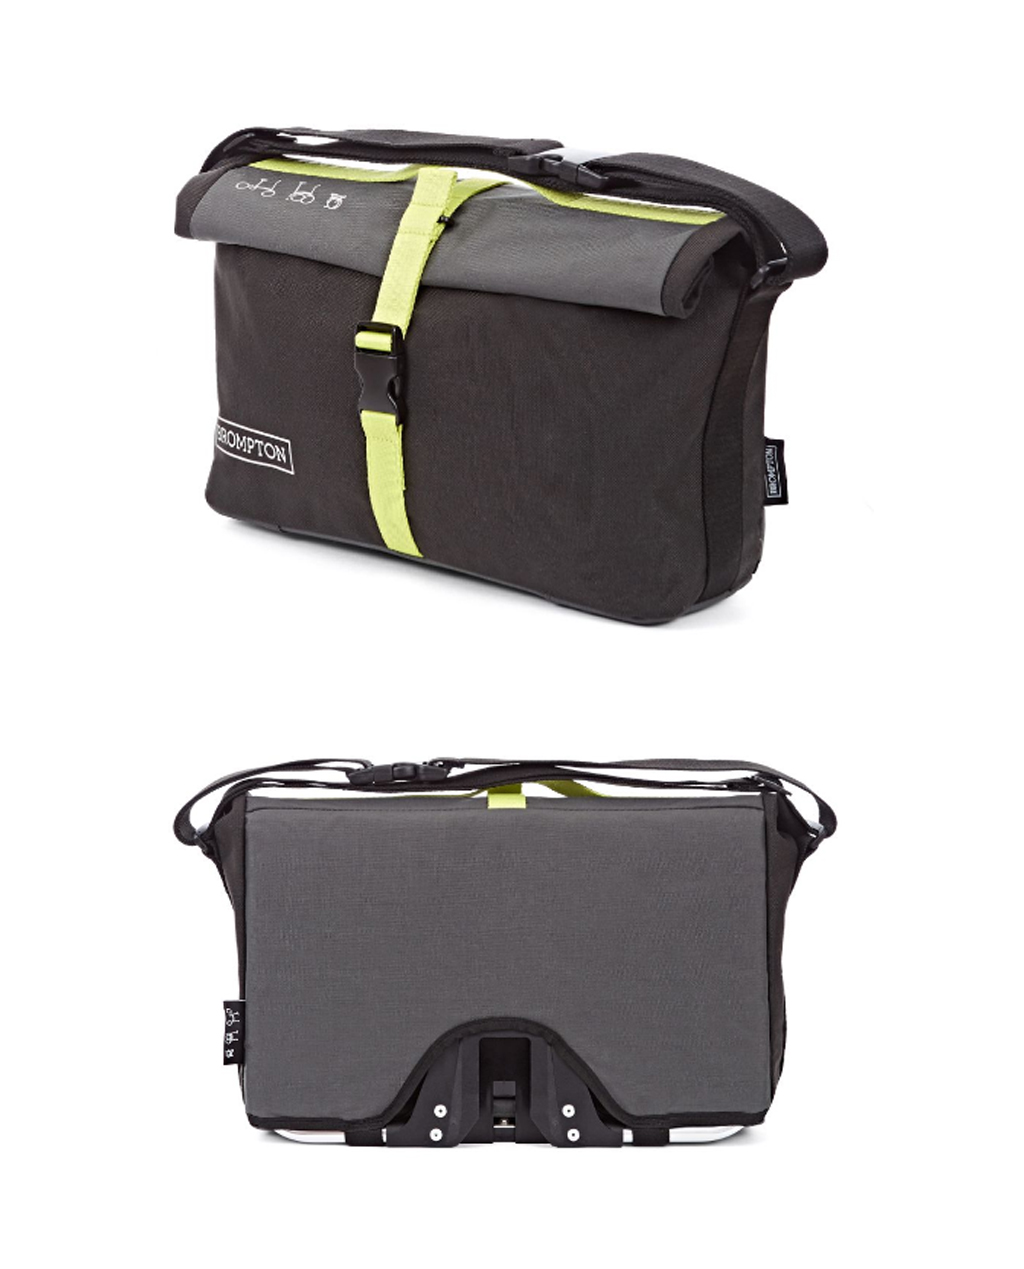 Q-Parts - Brompton Roll Top Shoulder Bag - Gray/Black/Lime Green